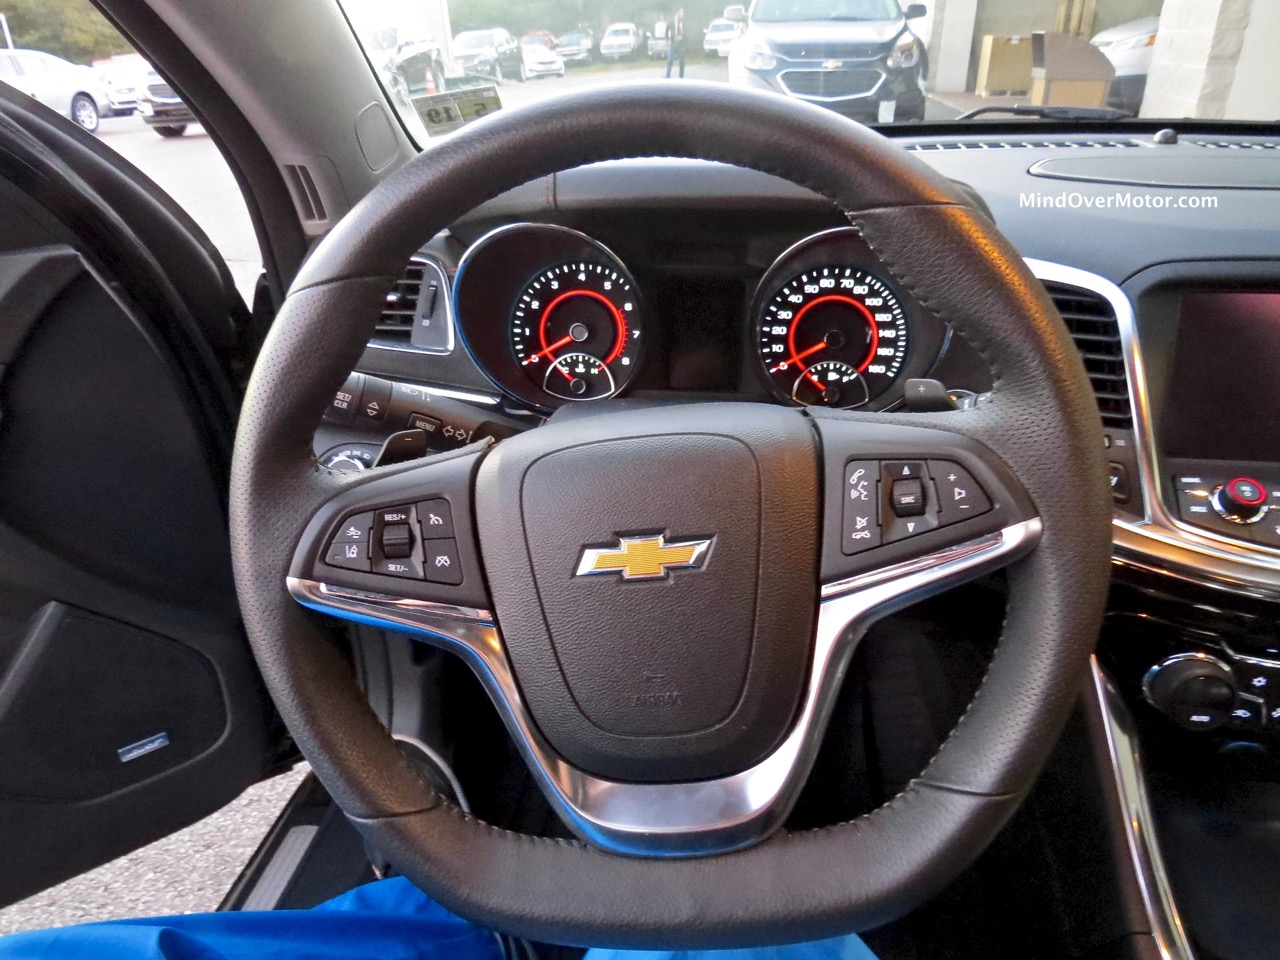 2014 Chevrolet SS Steering Wheel